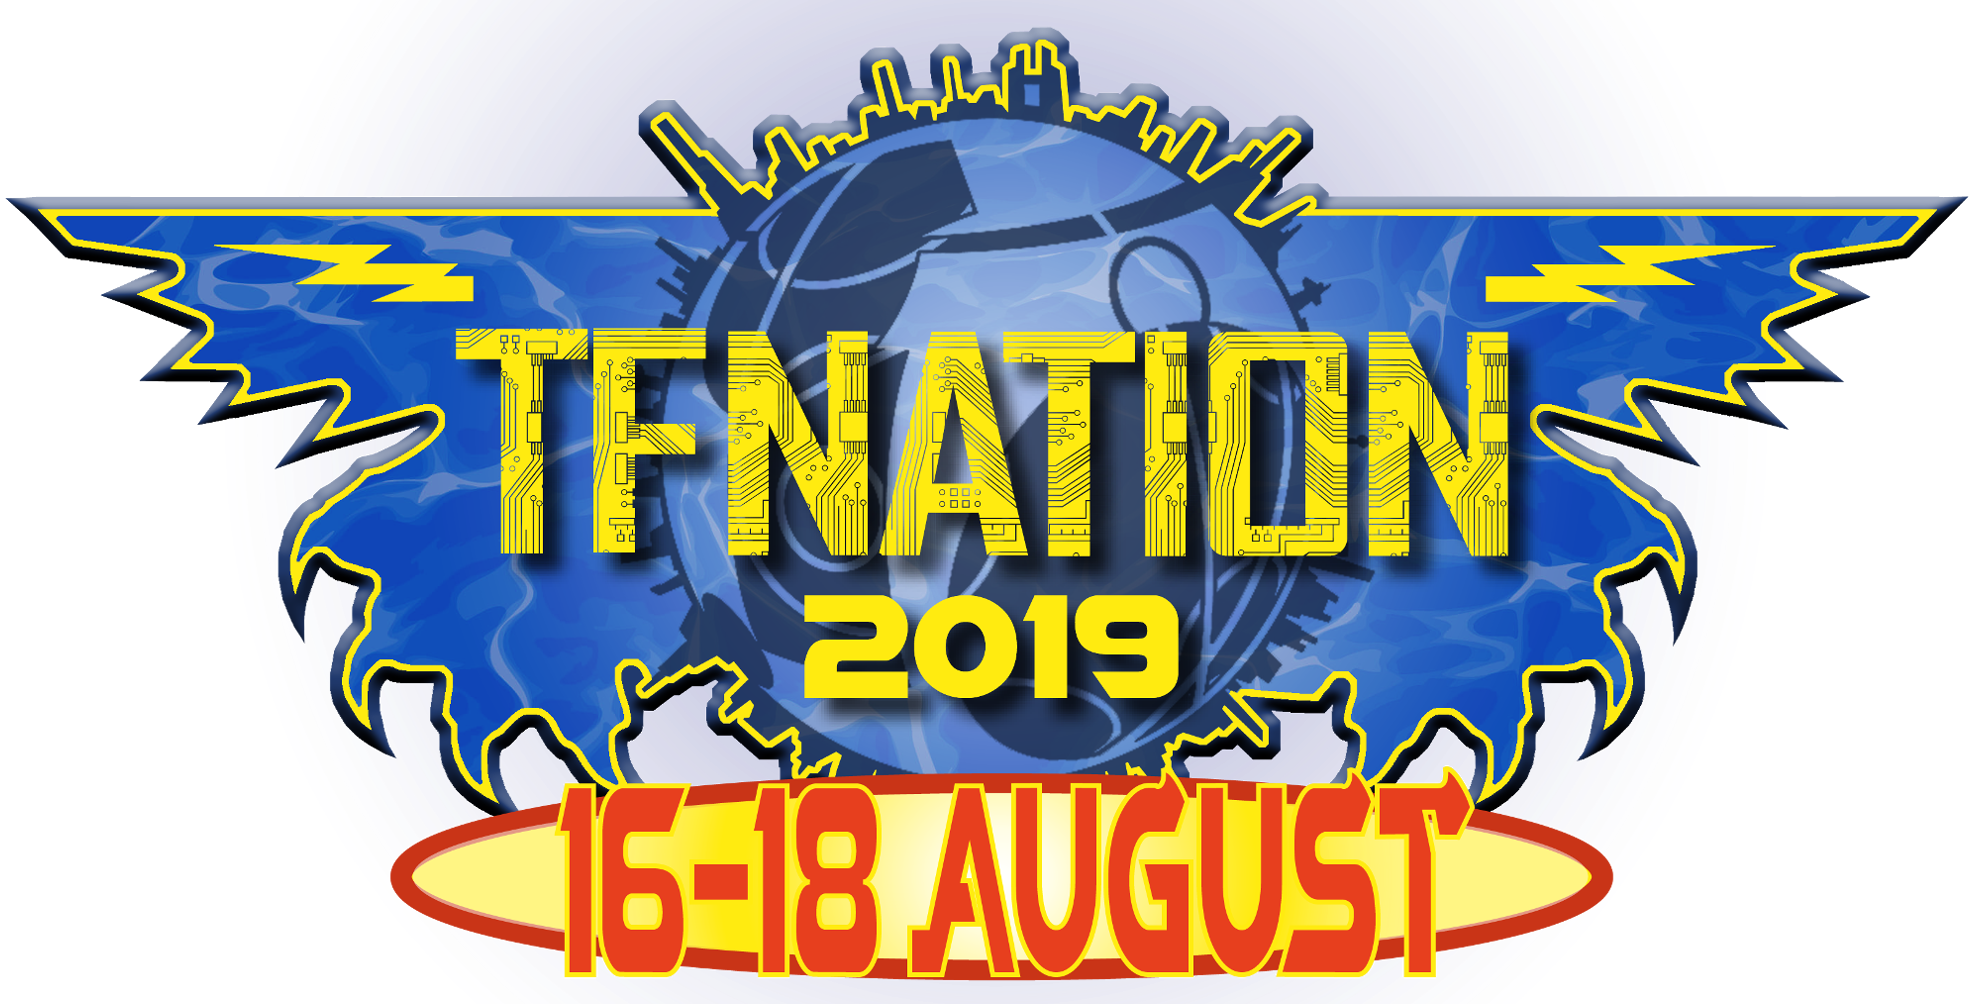 Click to enter the TFNation 2019 website